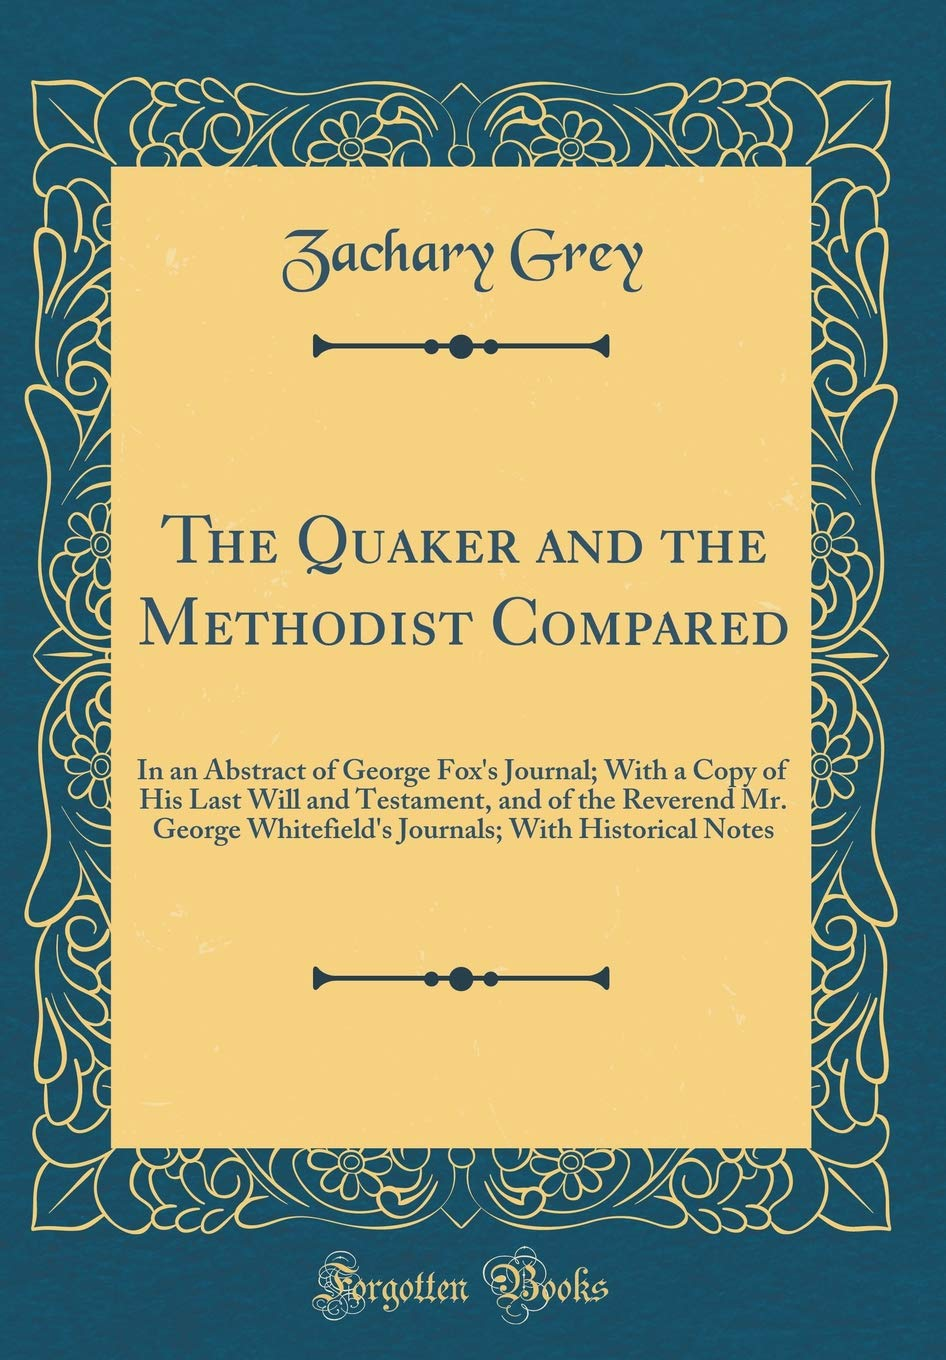 The Quaker and the Methodist Compared: In an Abstract of George Fox's Journal; With a Copy of His Last Will and Testament, and of the Reverend Mr. ... With Historical Notes (Classic Reprint) pdf epub